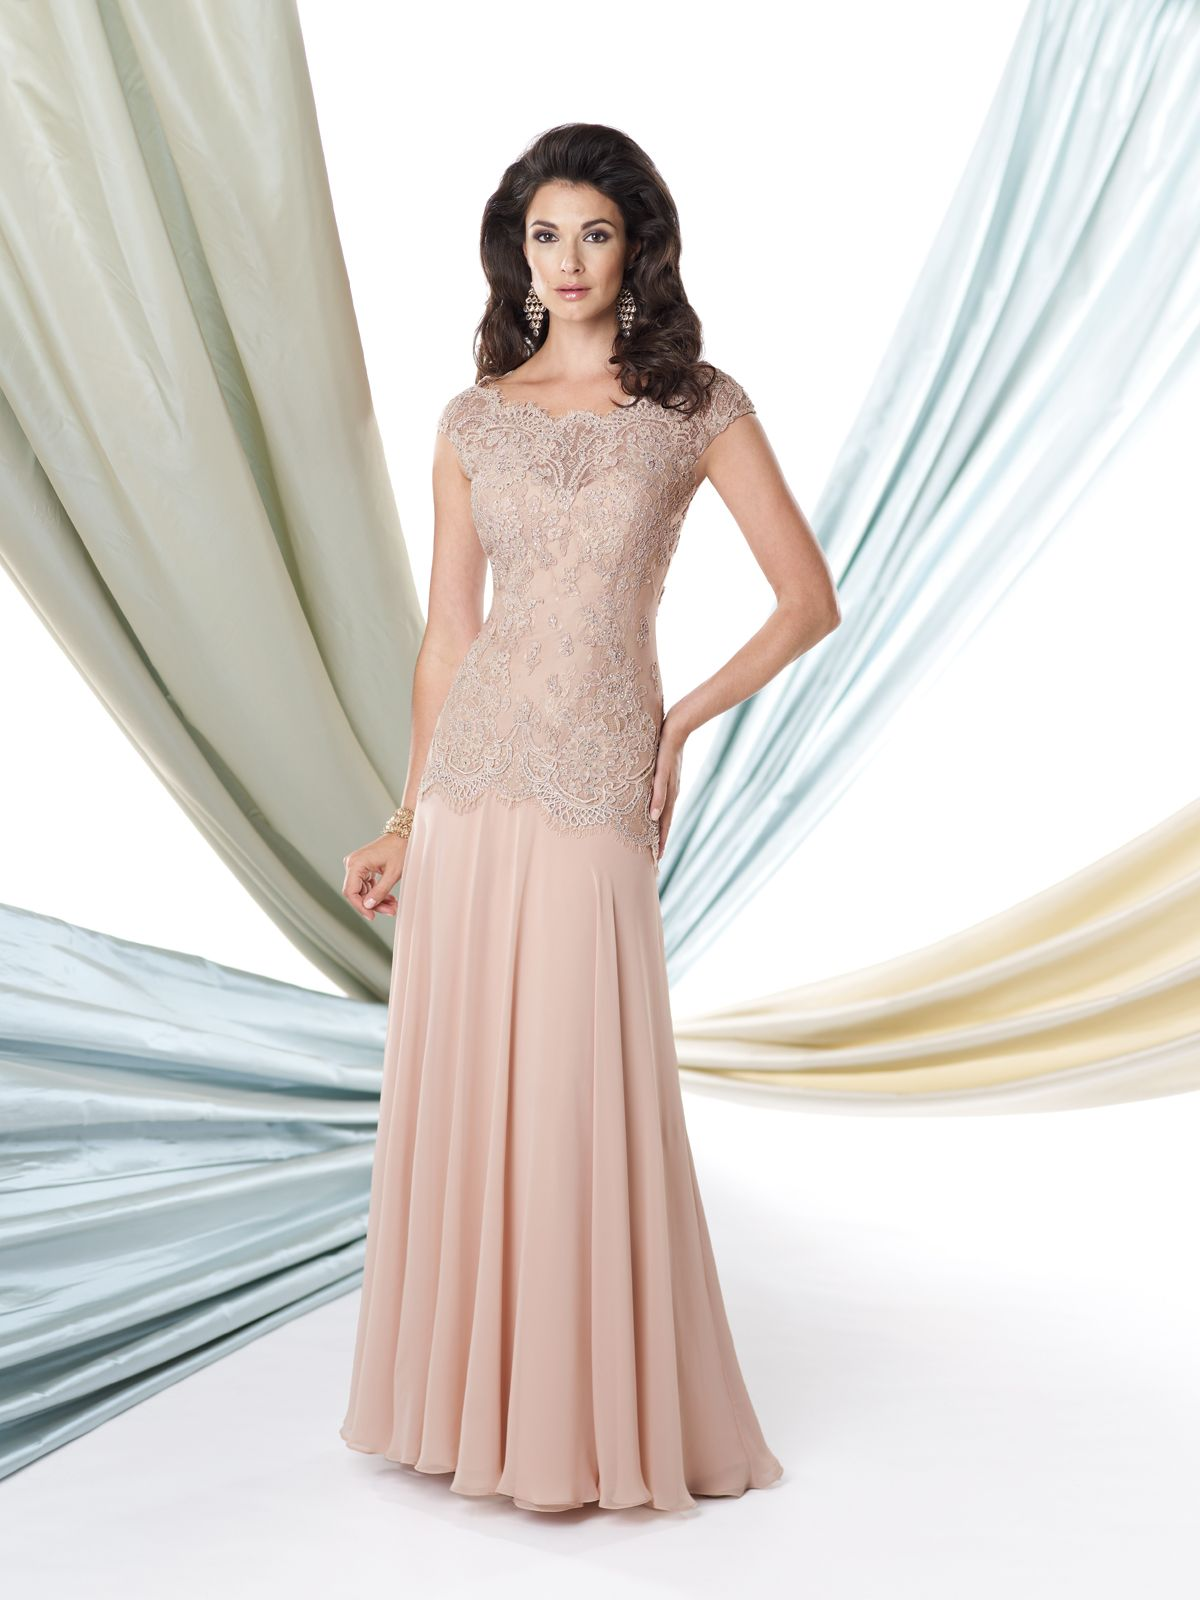 a6f0fc5a37 Sophisticated Mother of the Bride Dresses 2019 by Mon Cheri